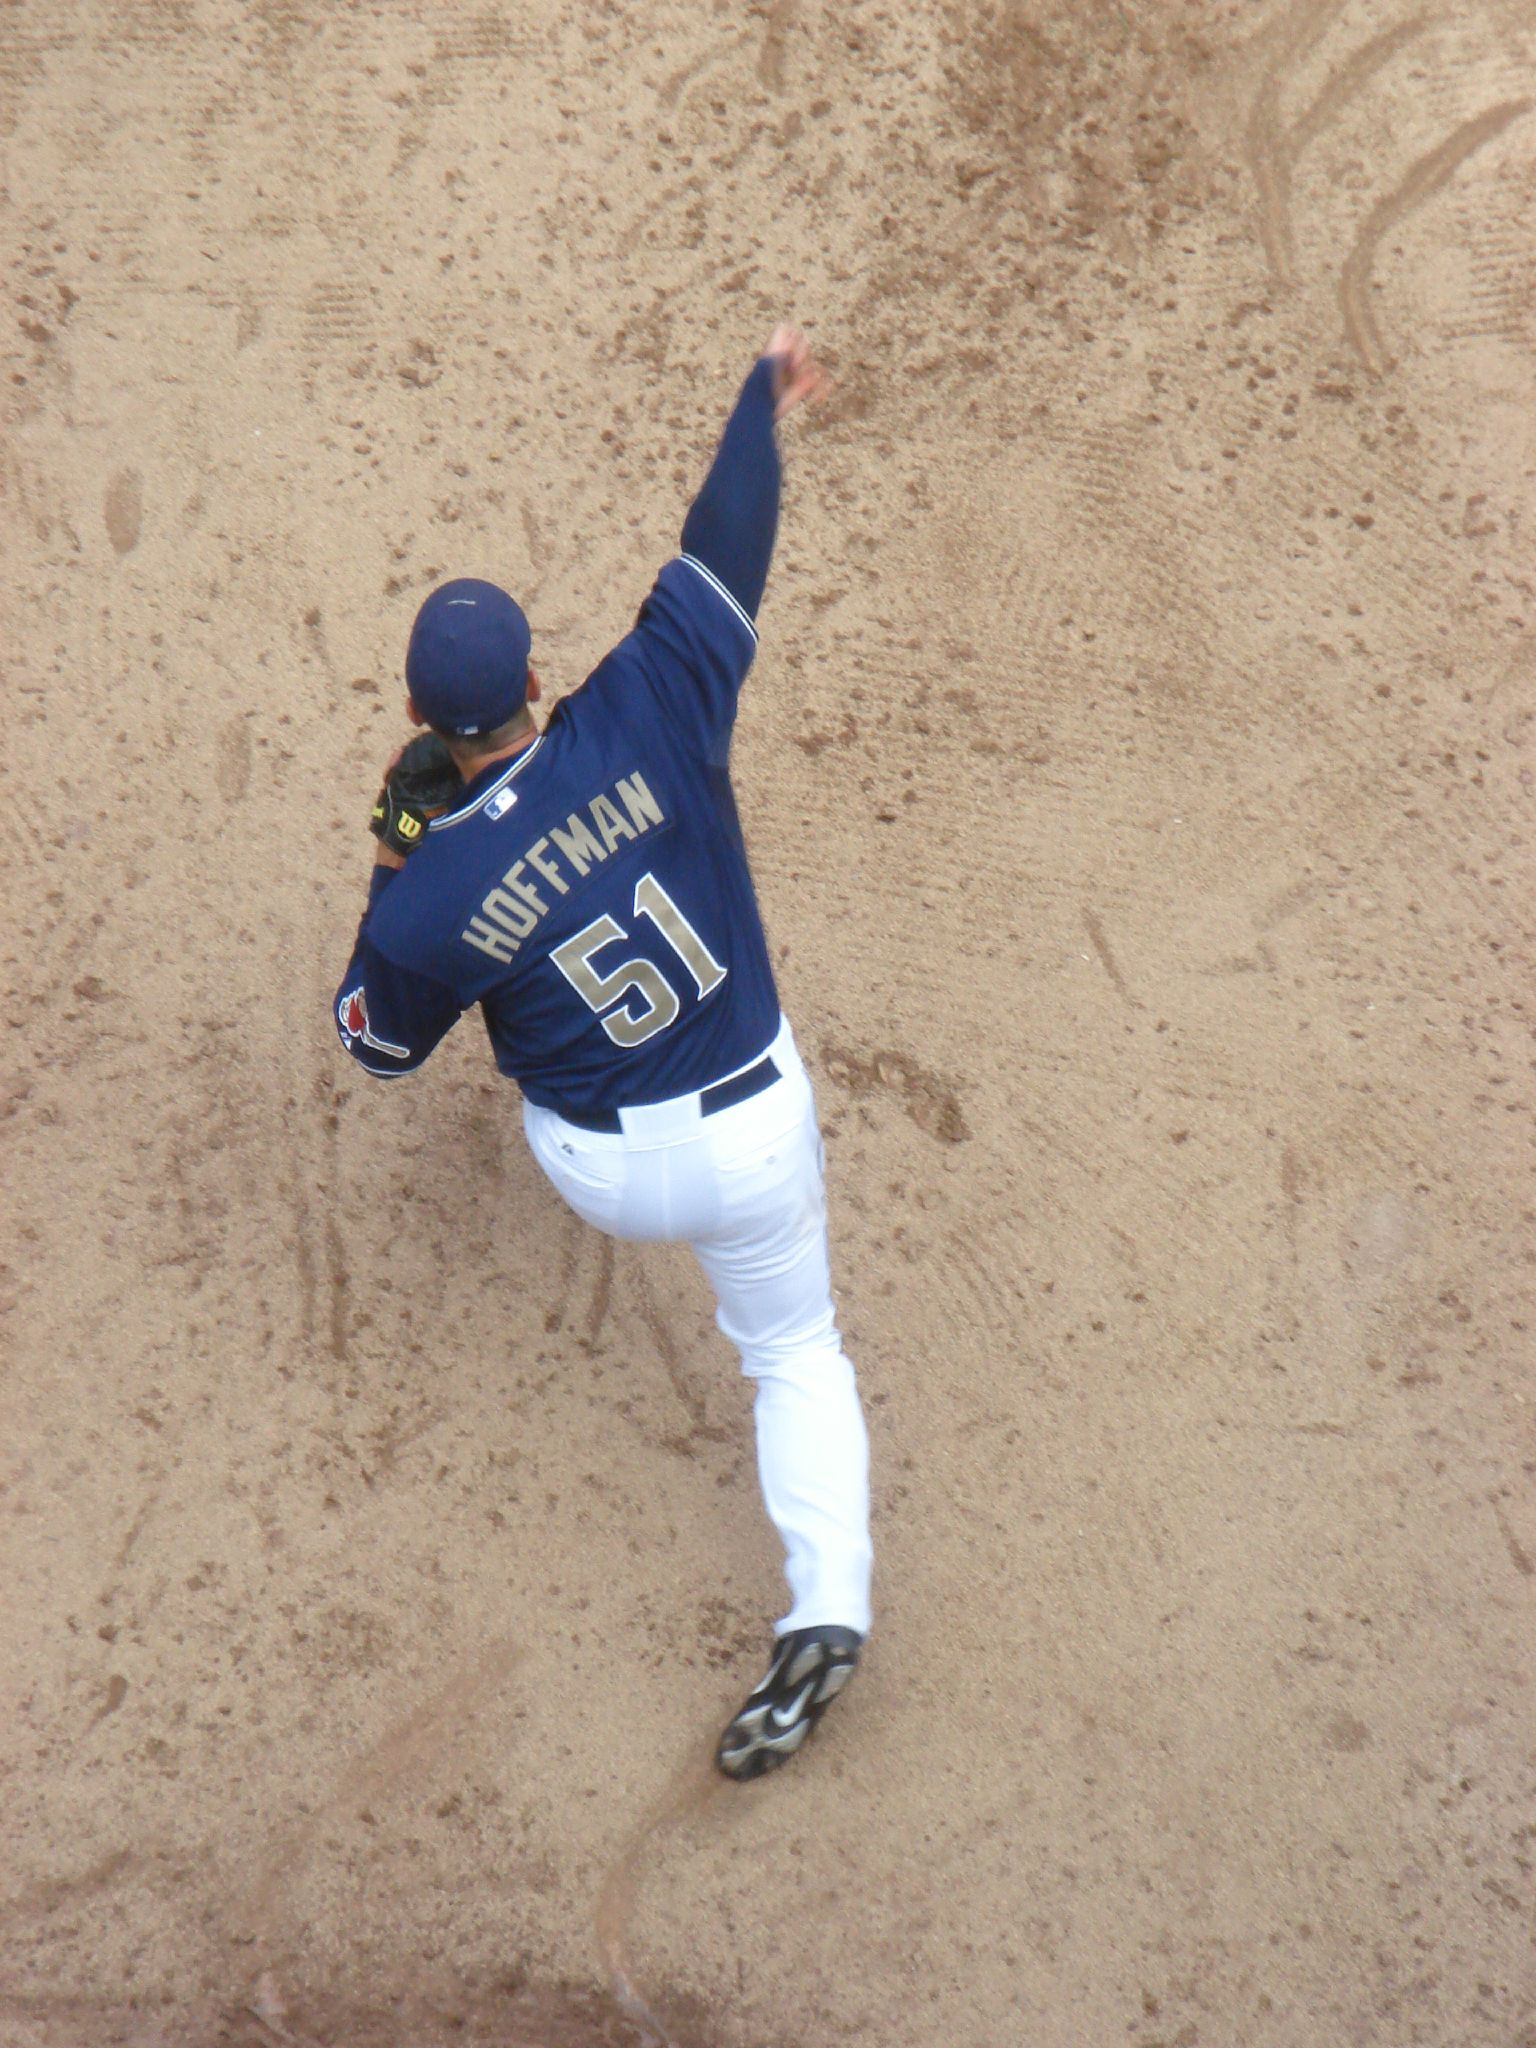 Trevor_Hoffman_Warming_Up_(5).jpg